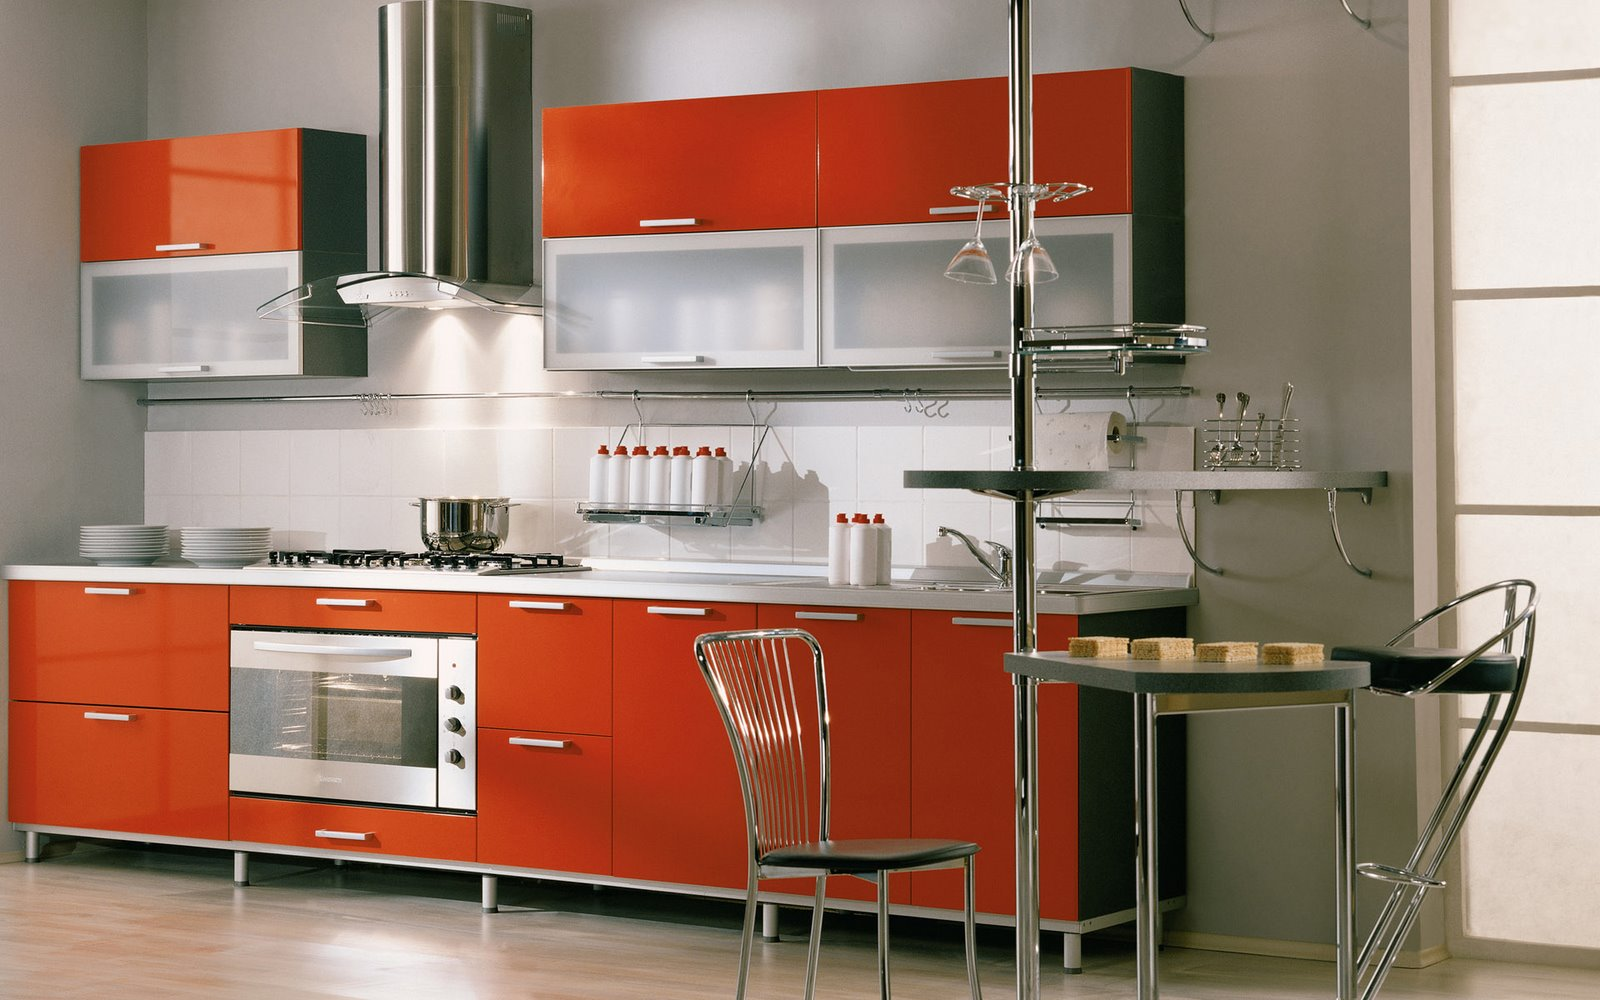 10 creative kitchen designs 2015 for Small kitchen designs 2015